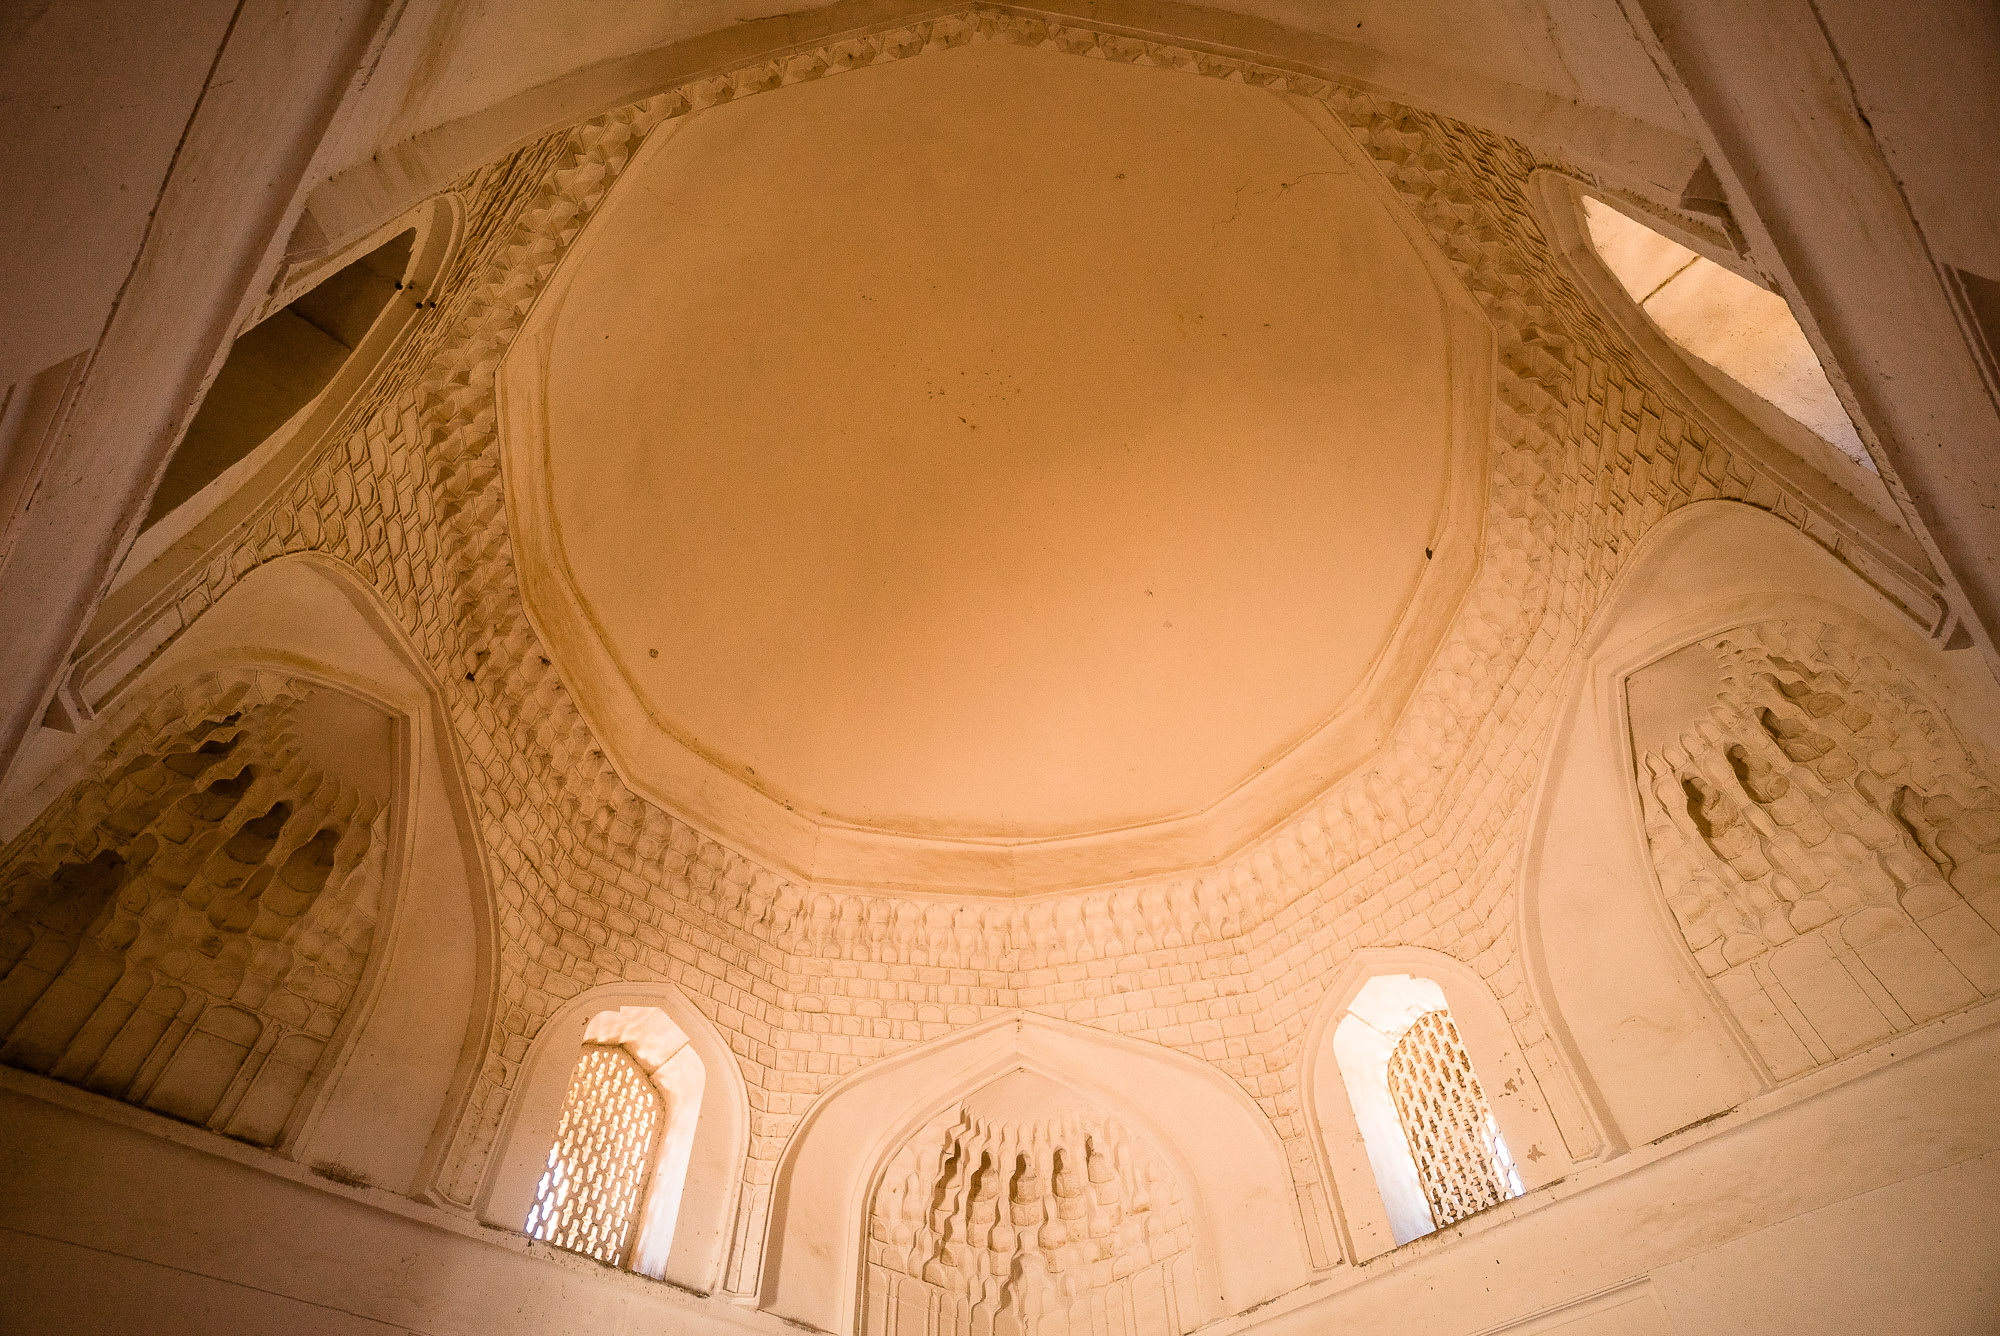 mausoleum ceiling